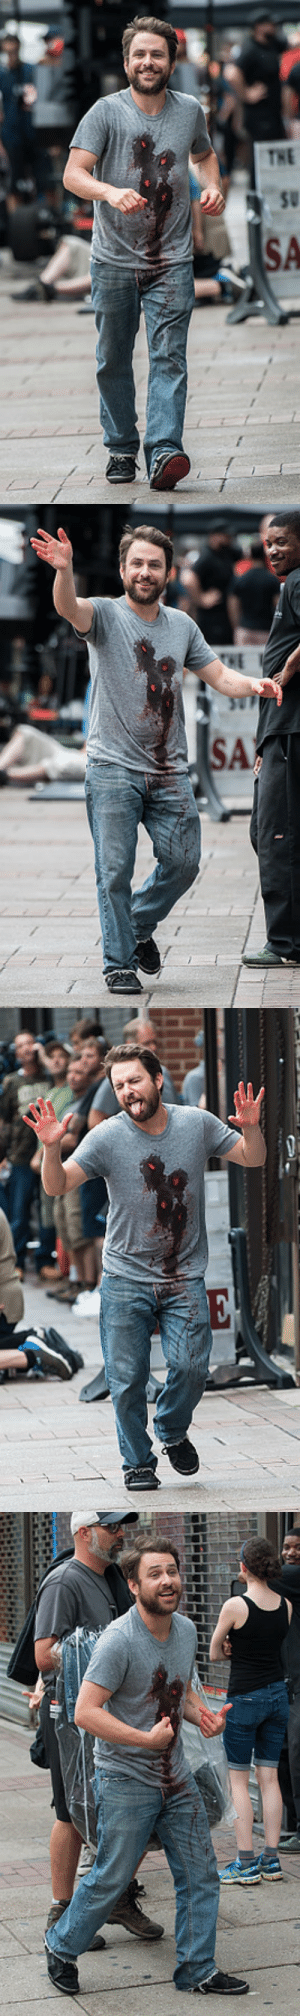 "god-hole: ganondilf:  hellyeahcharlieday:  Charlie Day is seen filming scenes of season 12 of It's Always Sunny In Philadelphia sitcom on July 1, 2016 in Philadelphia, Pennsylvania  I love how any other show these set pics would be the biggest spoiler ever but Sunny fans are like ""lol guess he gets shot to death, how are they gotta get outta this one ha ha!""   : god-hole: ganondilf:  hellyeahcharlieday:  Charlie Day is seen filming scenes of season 12 of It's Always Sunny In Philadelphia sitcom on July 1, 2016 in Philadelphia, Pennsylvania  I love how any other show these set pics would be the biggest spoiler ever but Sunny fans are like ""lol guess he gets shot to death, how are they gotta get outta this one ha ha!"""